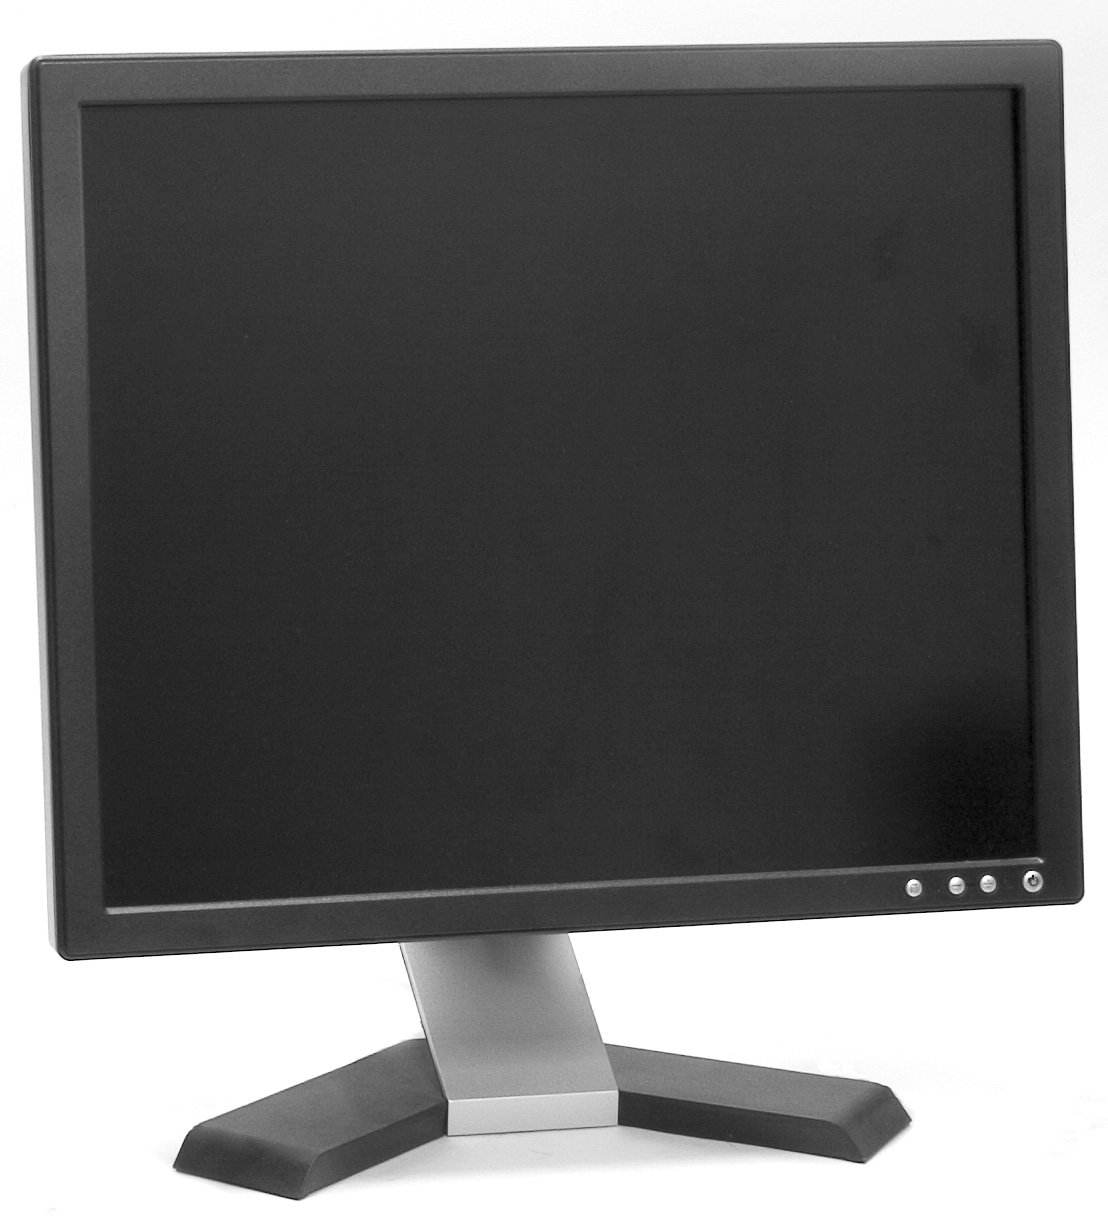 ELECTRONICS BAZAR: Cheap Computer Monitor